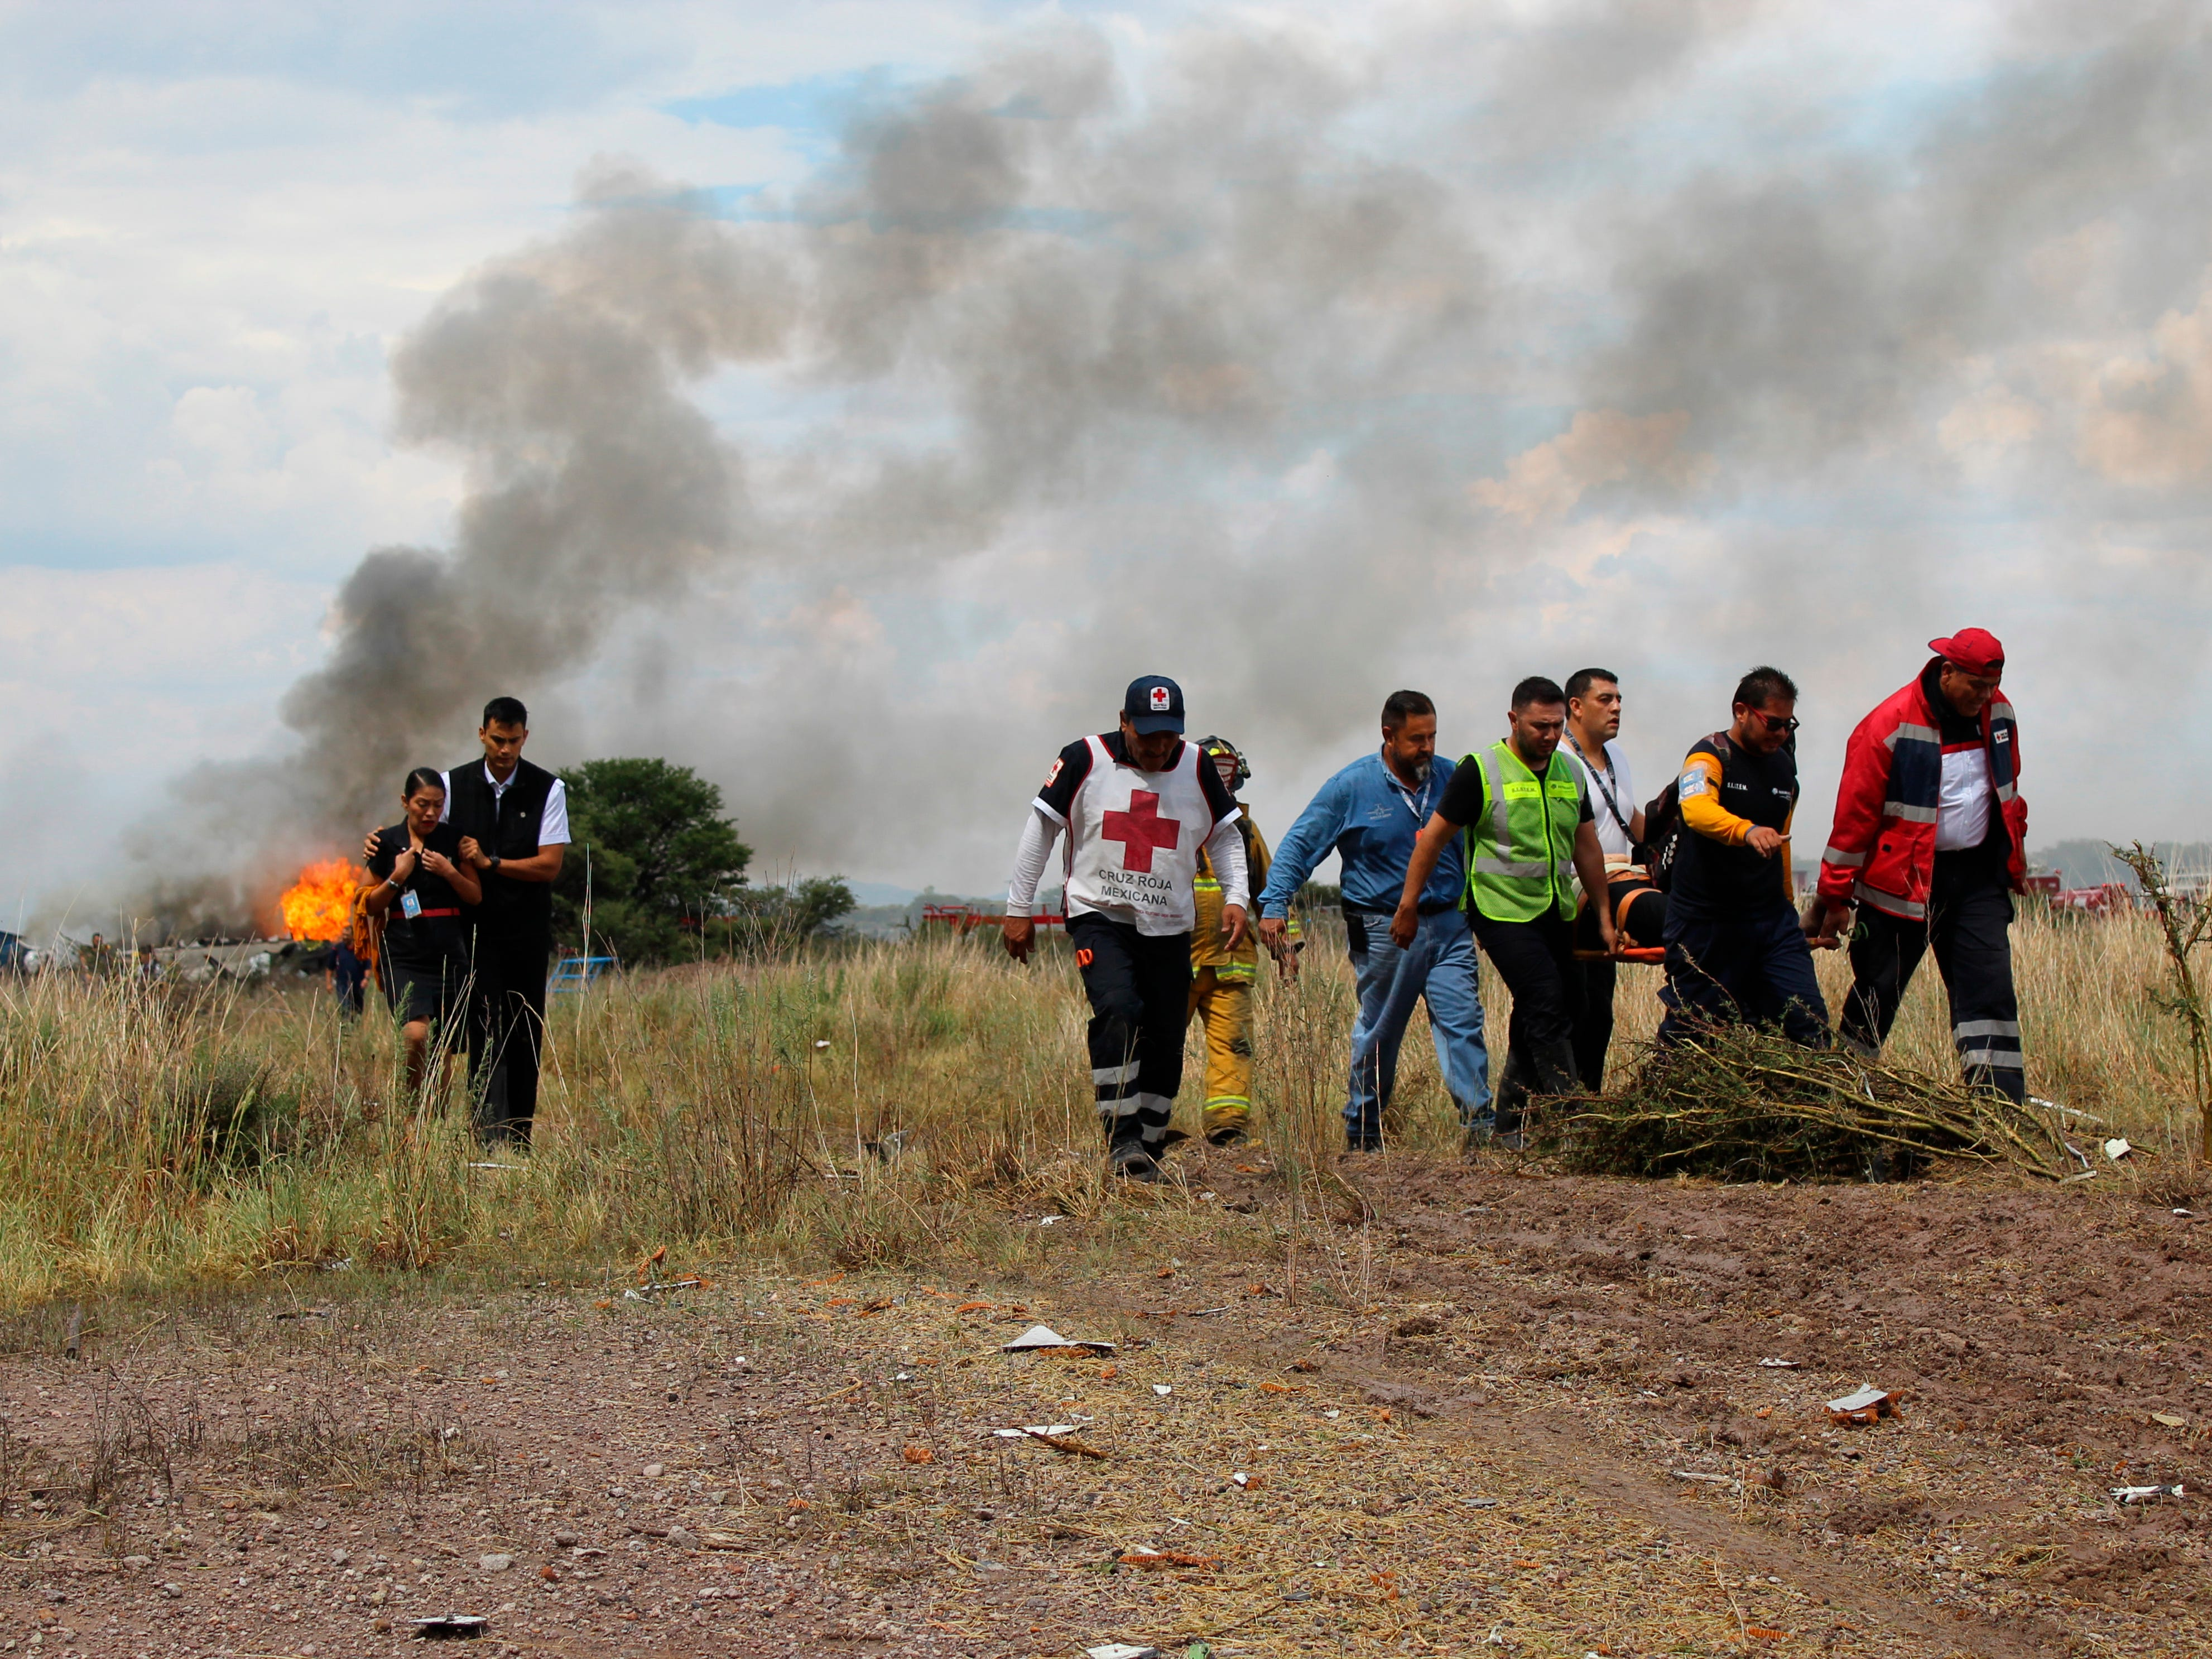 Ap Mexico Airliner Accident I Mex